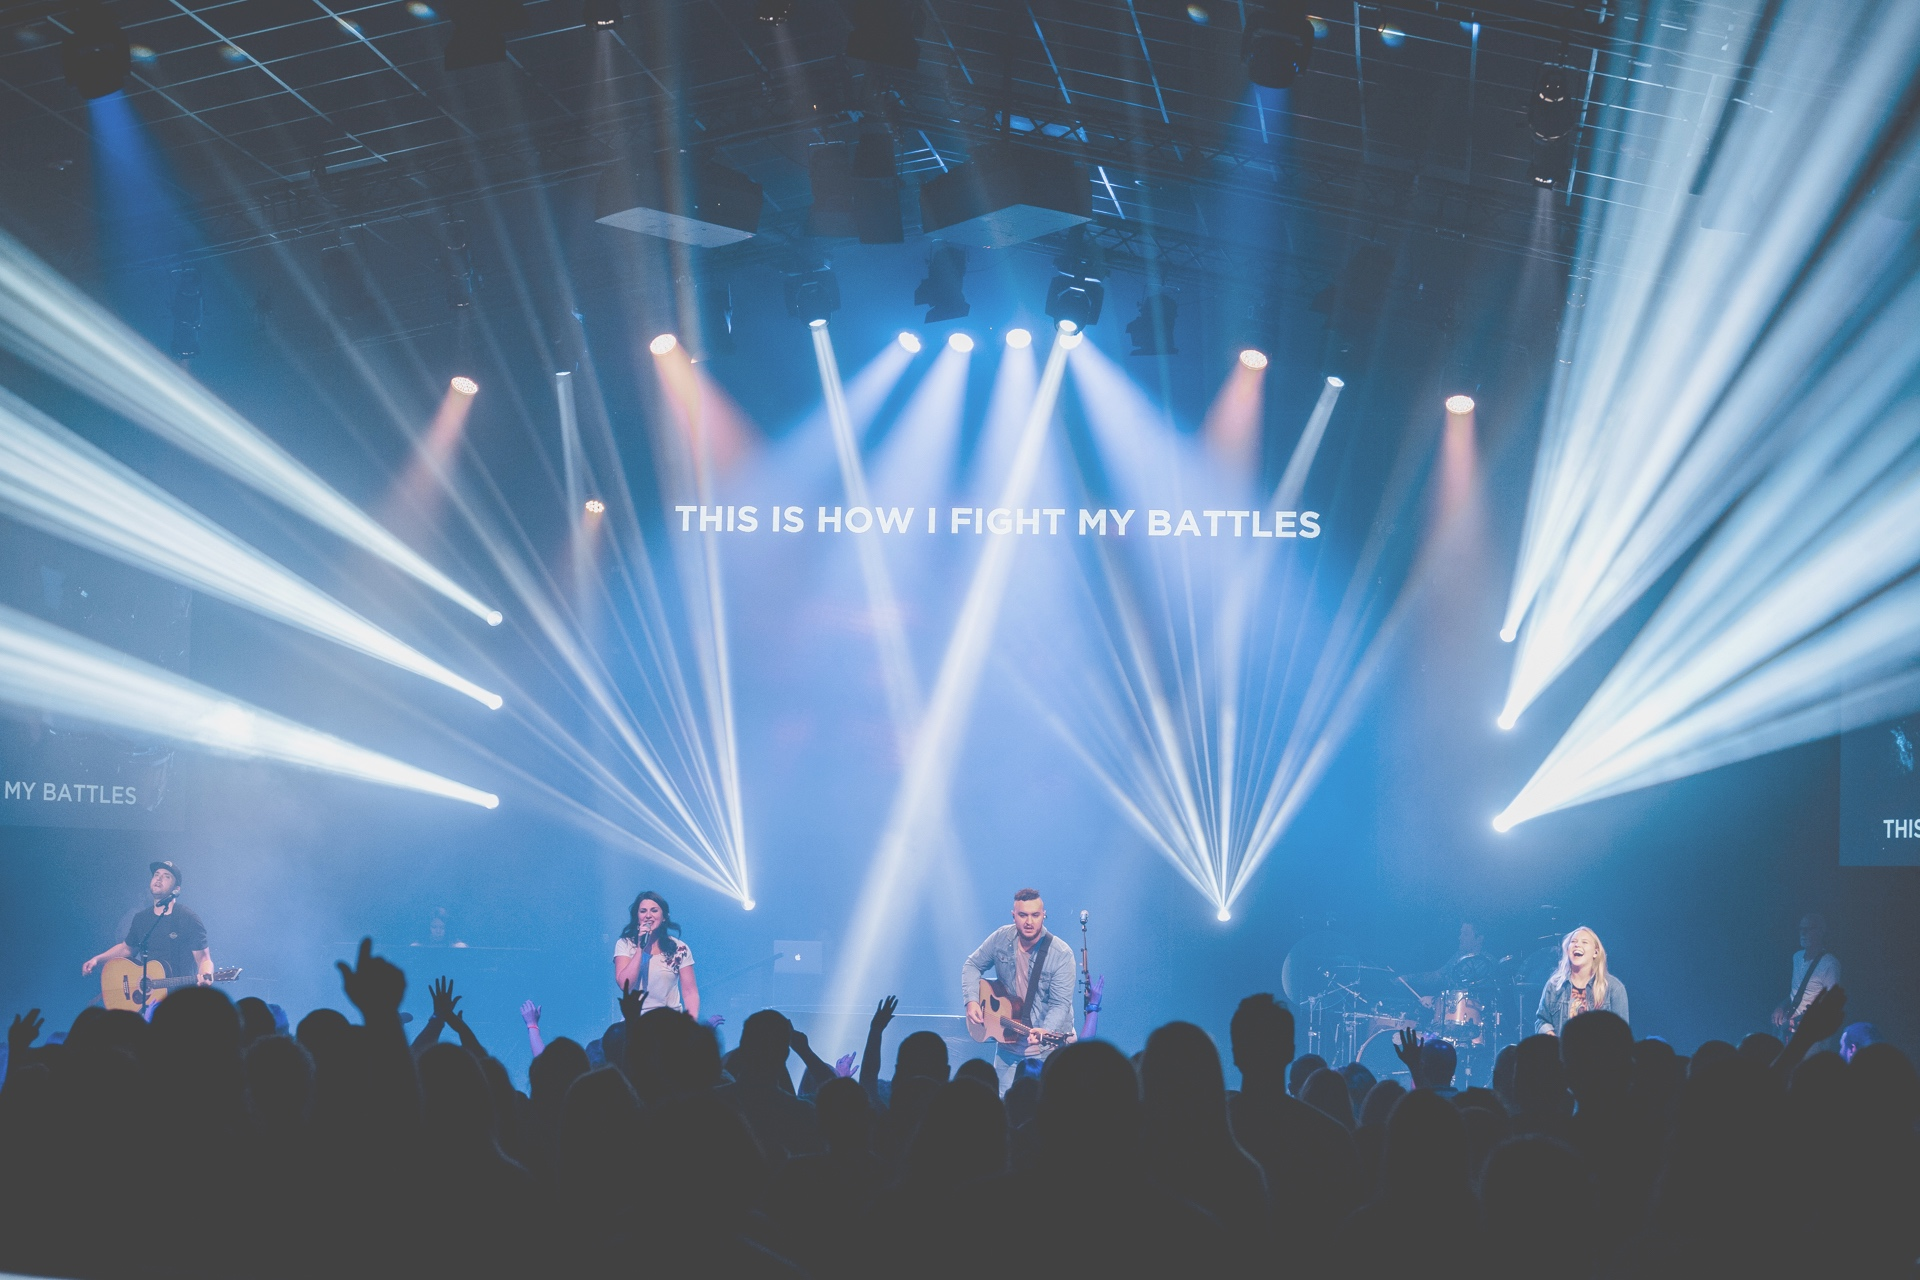 Faith Music - Open your heart and see the evidence of God's presence all around you as you listen to original music written, produced, and performed by our worship team.